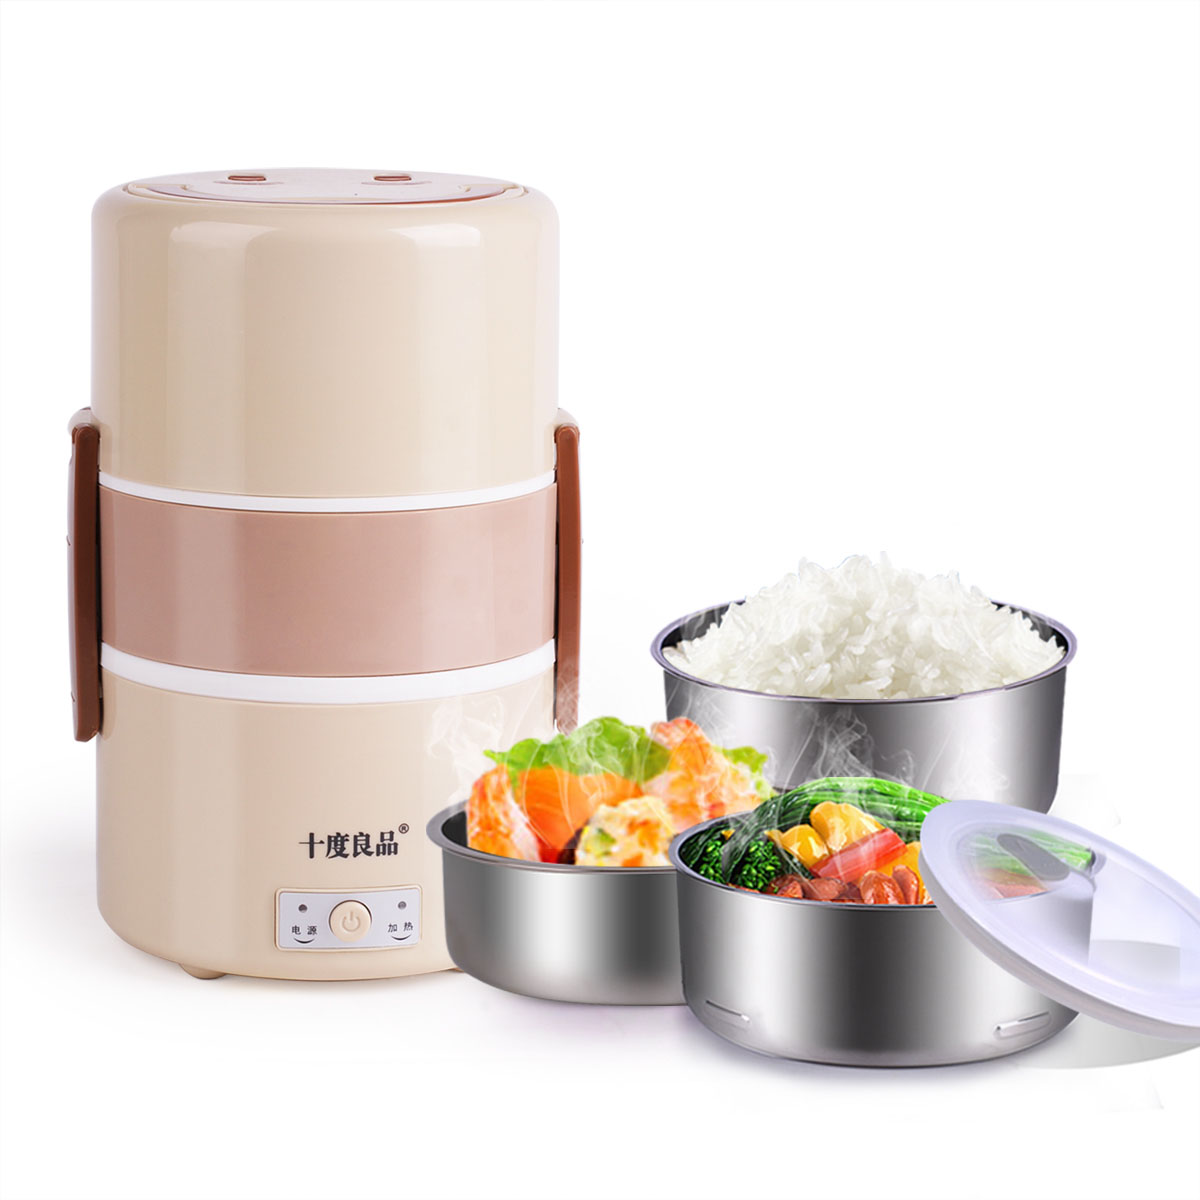 Electric Lunchbox Plug In Insulation Heating Lunch Box Stainless Steel Three Layers Steamed Rice 1.8L 1-2 PeopleElectric Lunchbox Plug In Insulation Heating Lunch Box Stainless Steel Three Layers Steamed Rice 1.8L 1-2 People